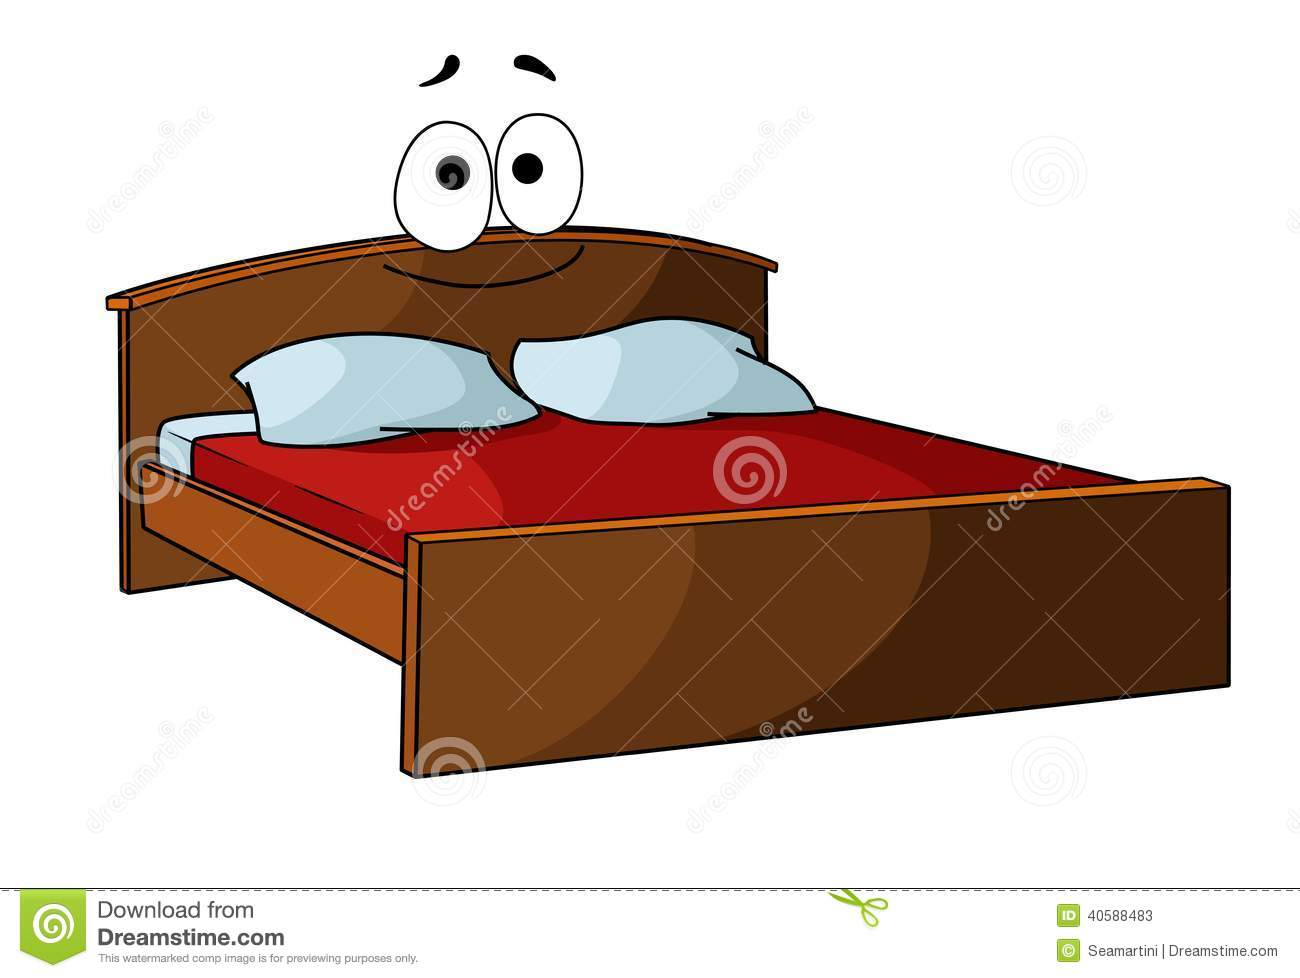 The most common mistakes people make with wood bed cartoon